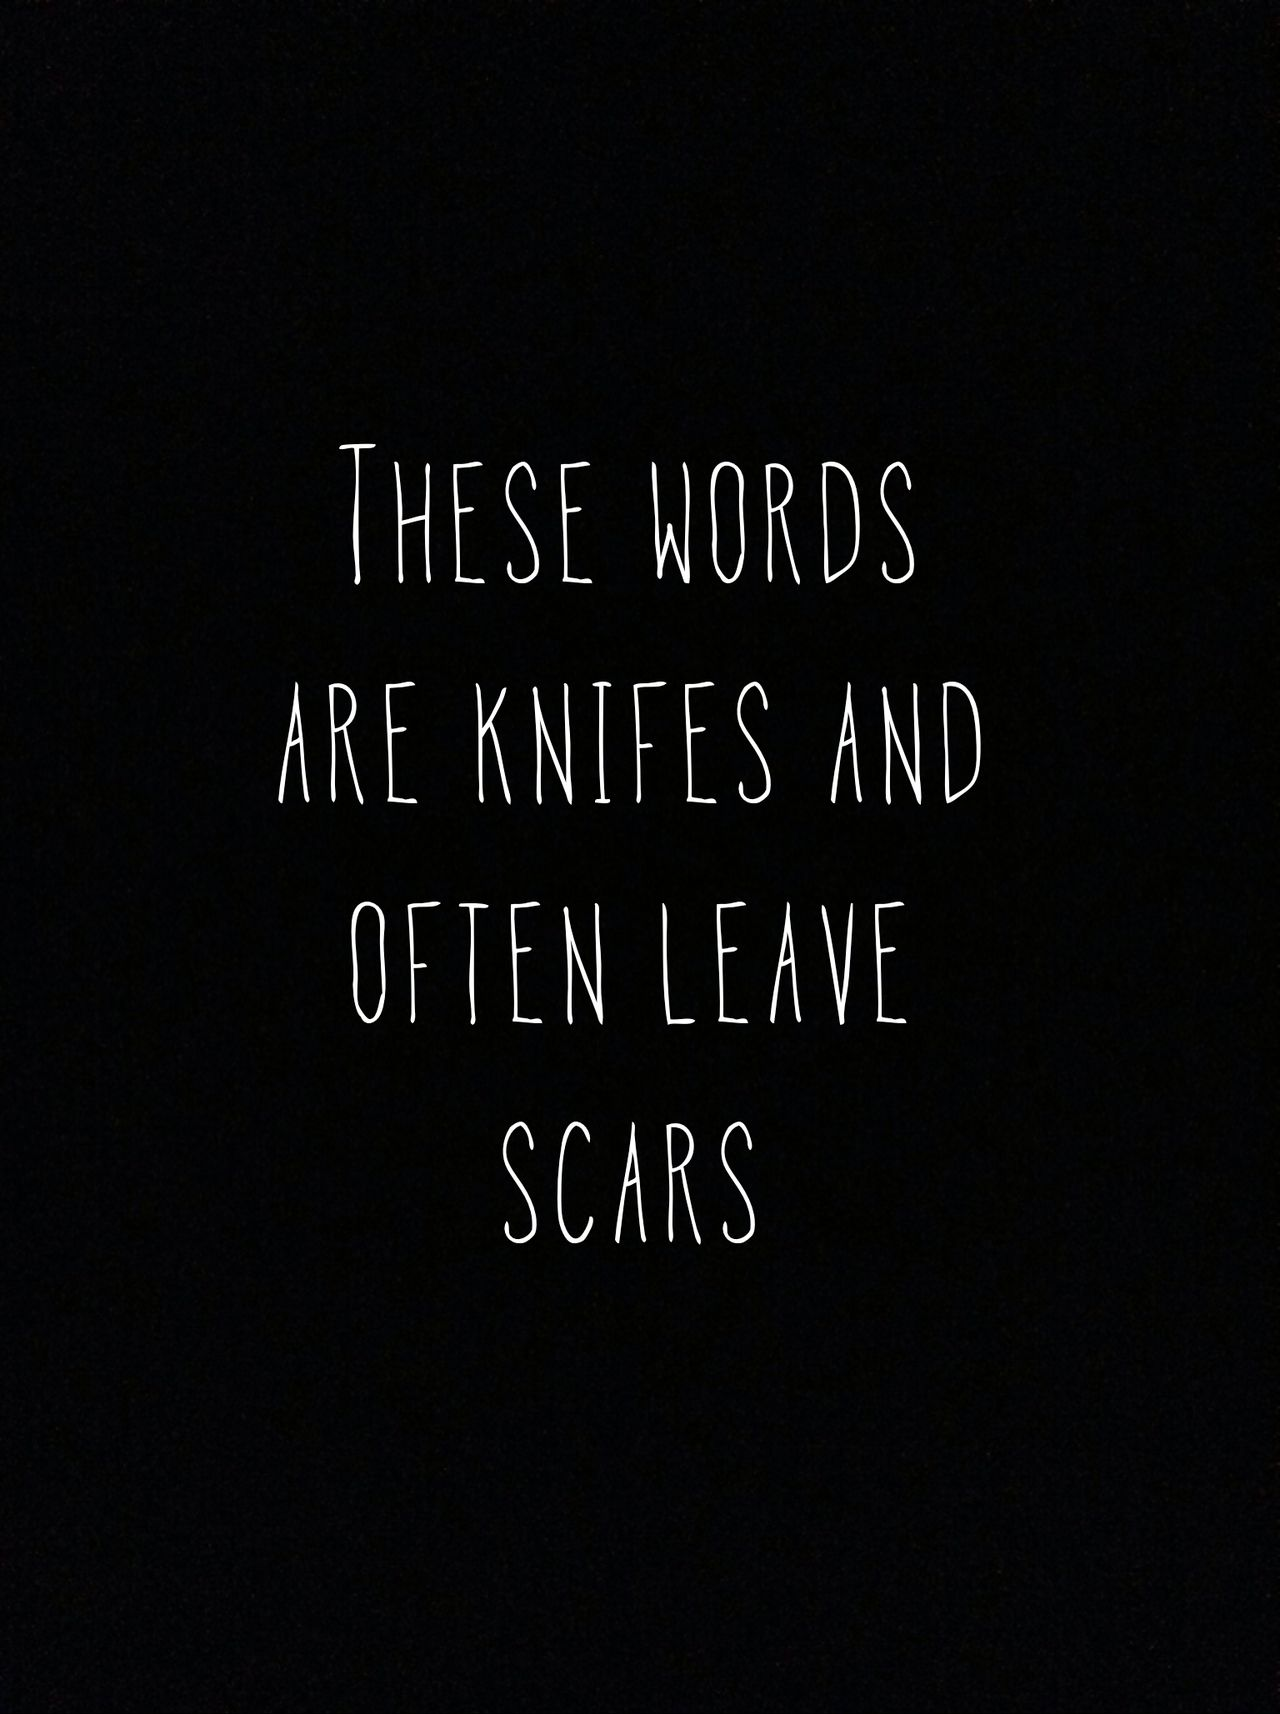 Emo quotes about cutting tumblr emo quote cutting sad arm - Emo Quotes About Cutting Tumblr Emo Quote Cutting Sad Arm 22